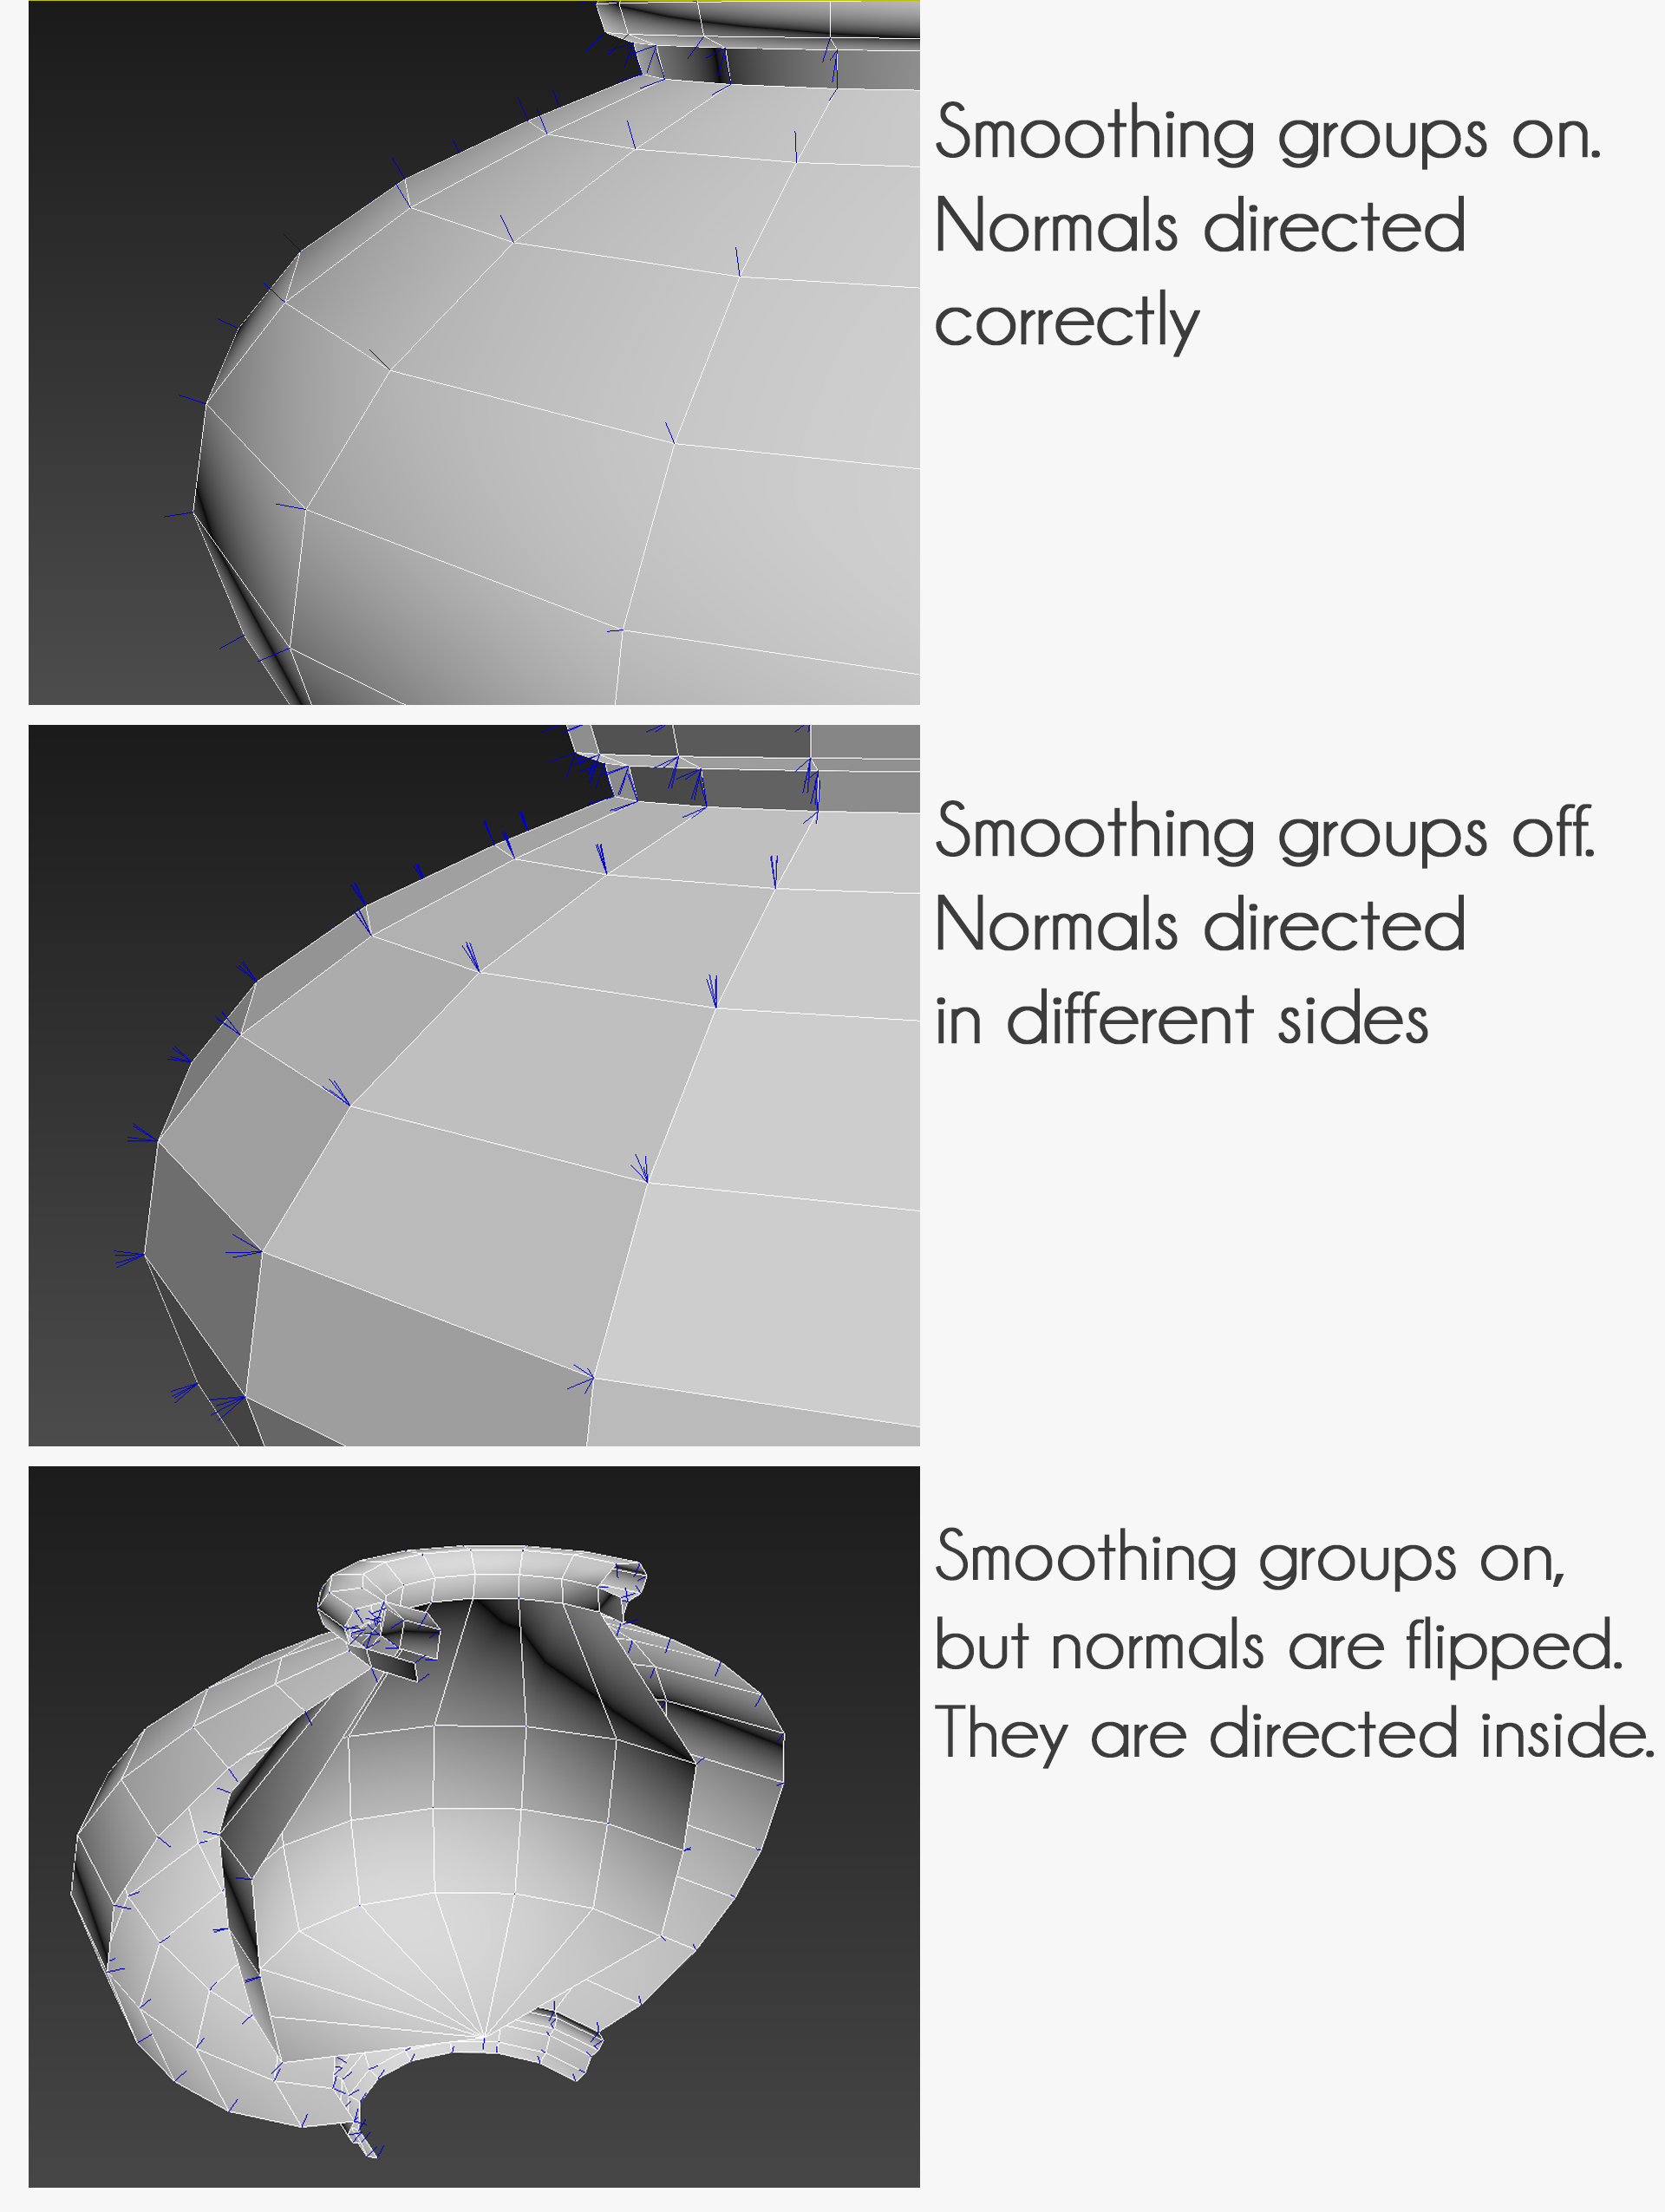 Flipped normals